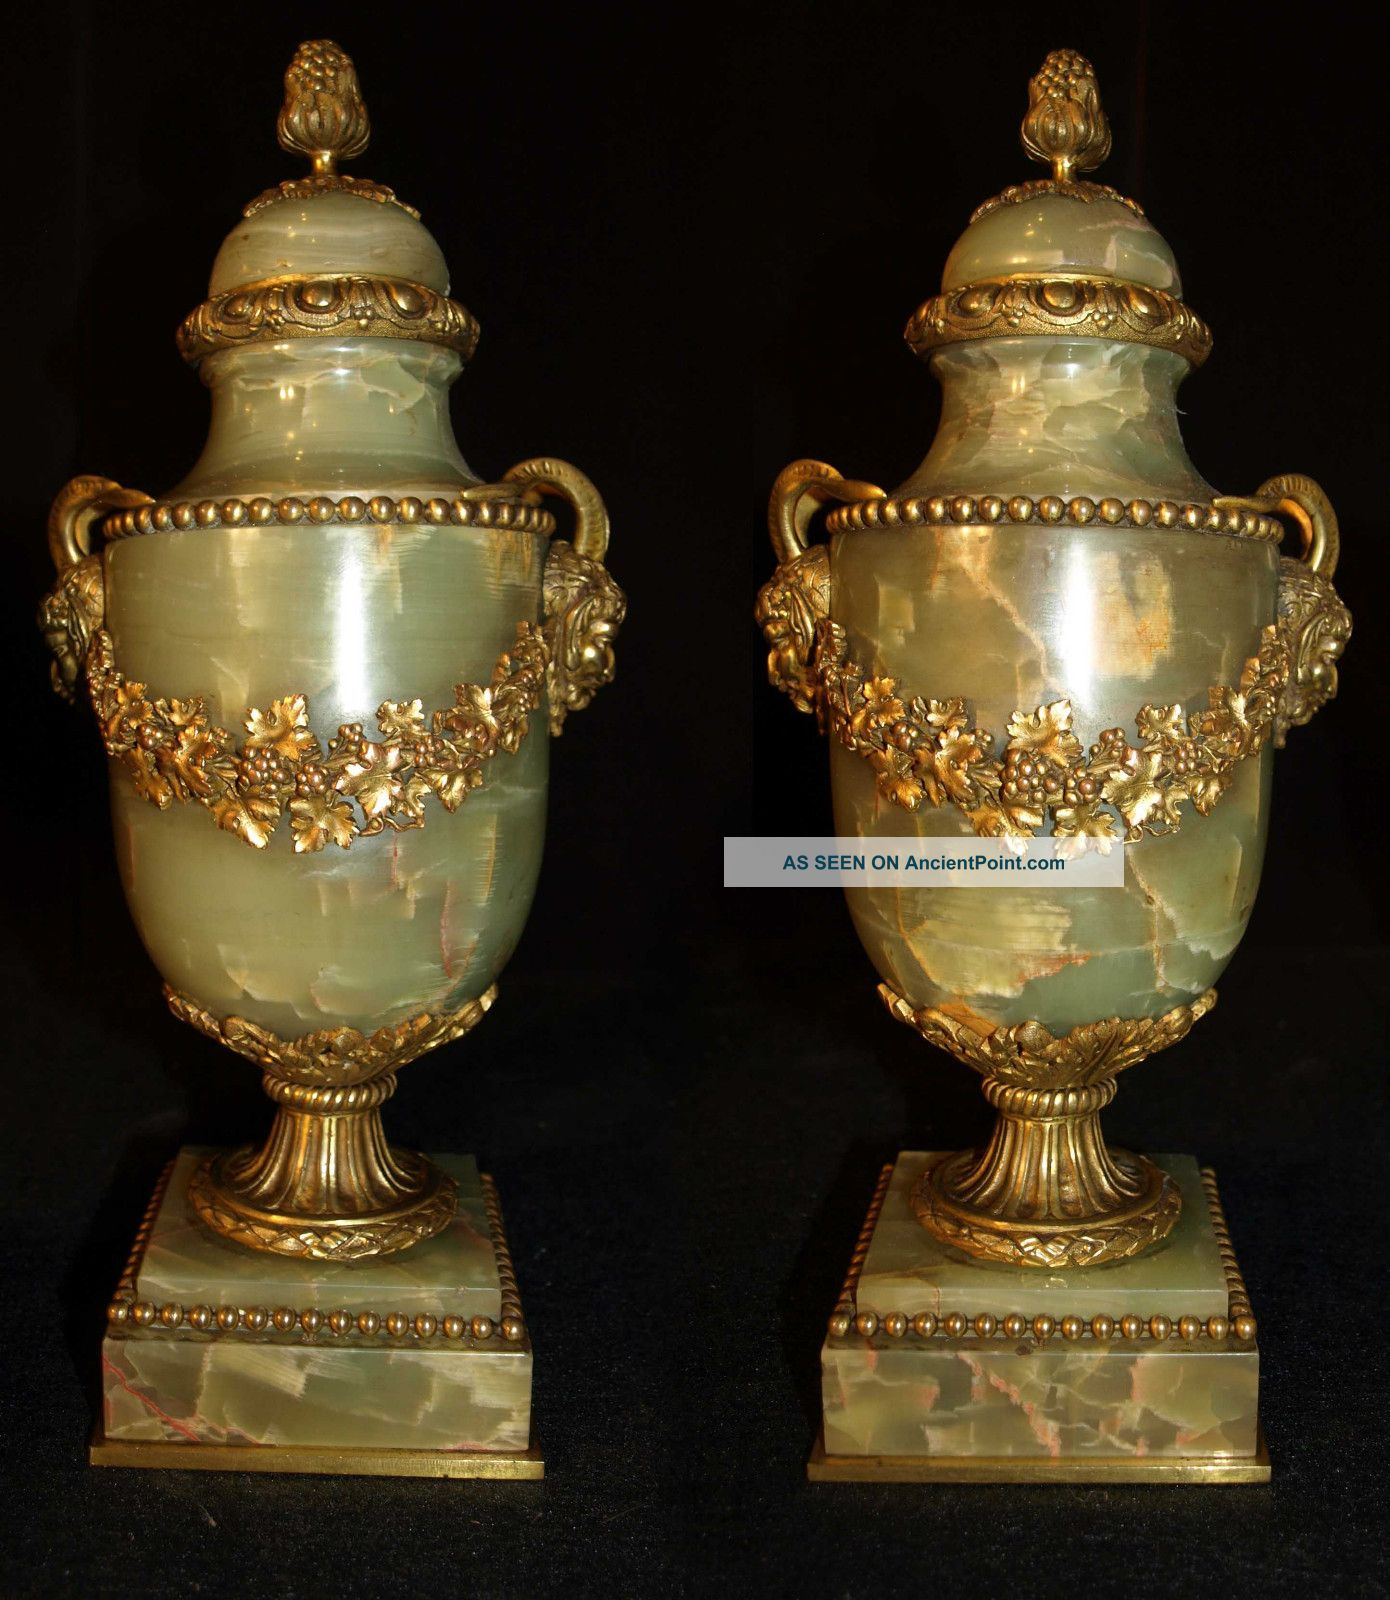 Antique Pair Of Cassoulettes Vases From France Gilt Bronze And Onyx,  1880 Columns & Posts photo